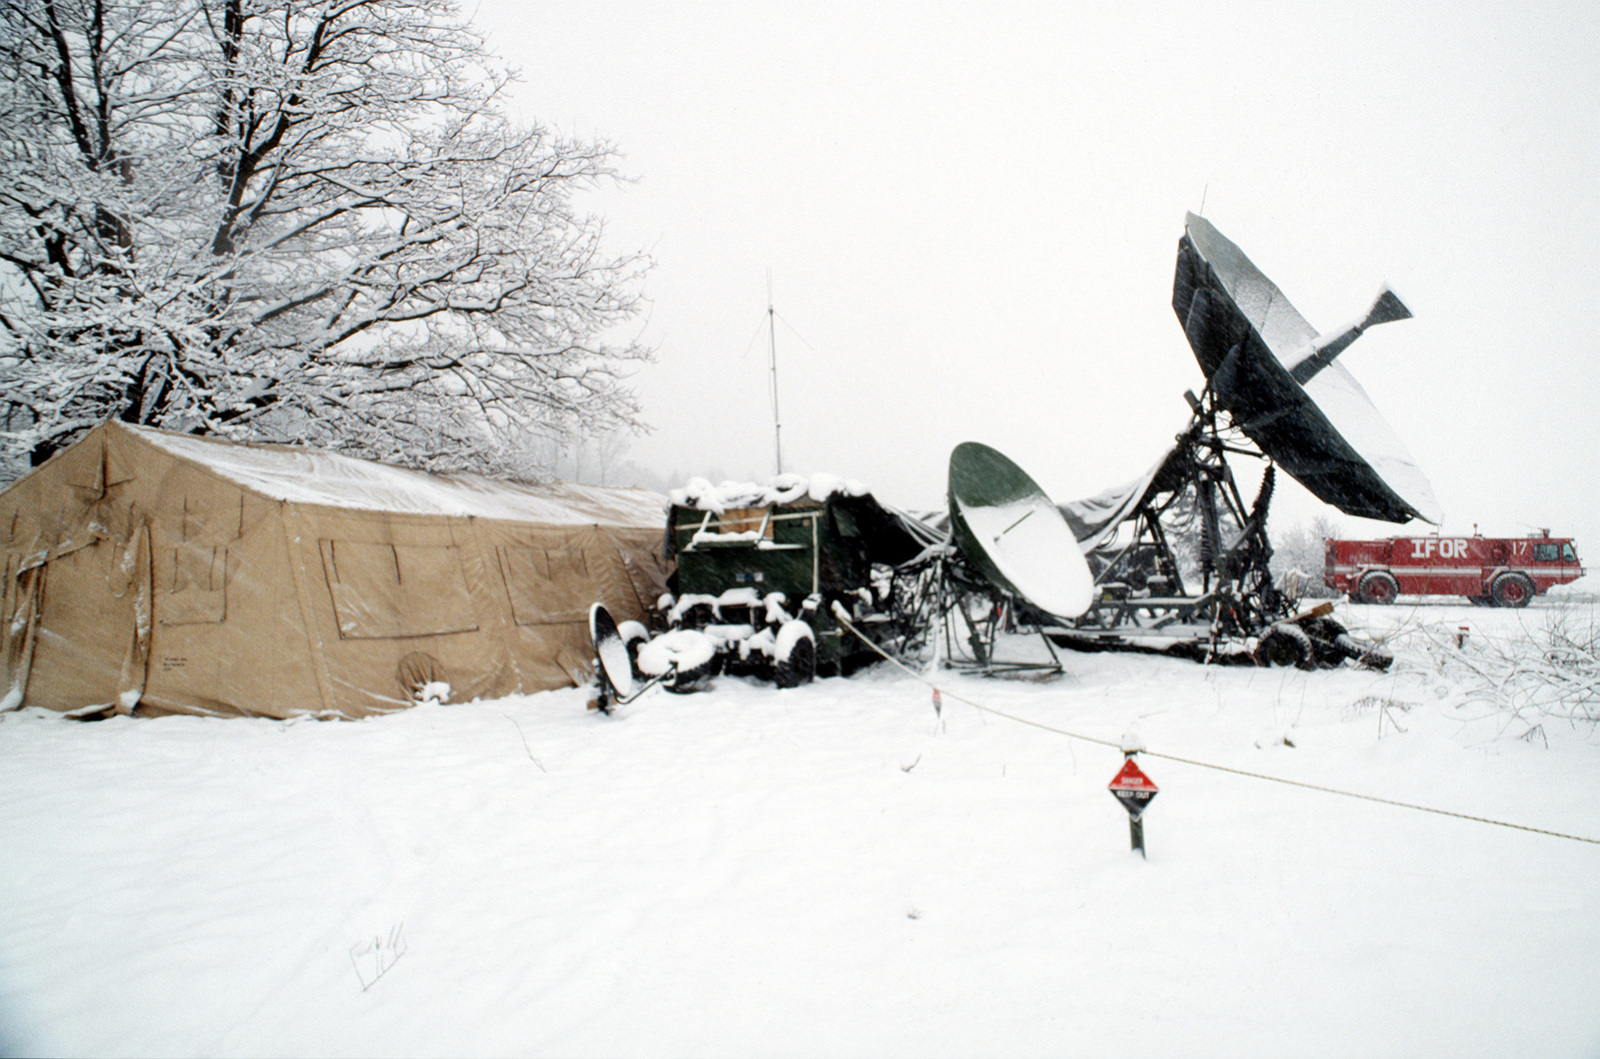 Satellite communication antenna set up by the 1ST Combat Communications Squadron, Ramstein Air Base, Germany, is covered with a fresh layer of snow during JOINT ENDEAVOR. In the background is seen a fire truck with the letters IFOR for Implementation Forces